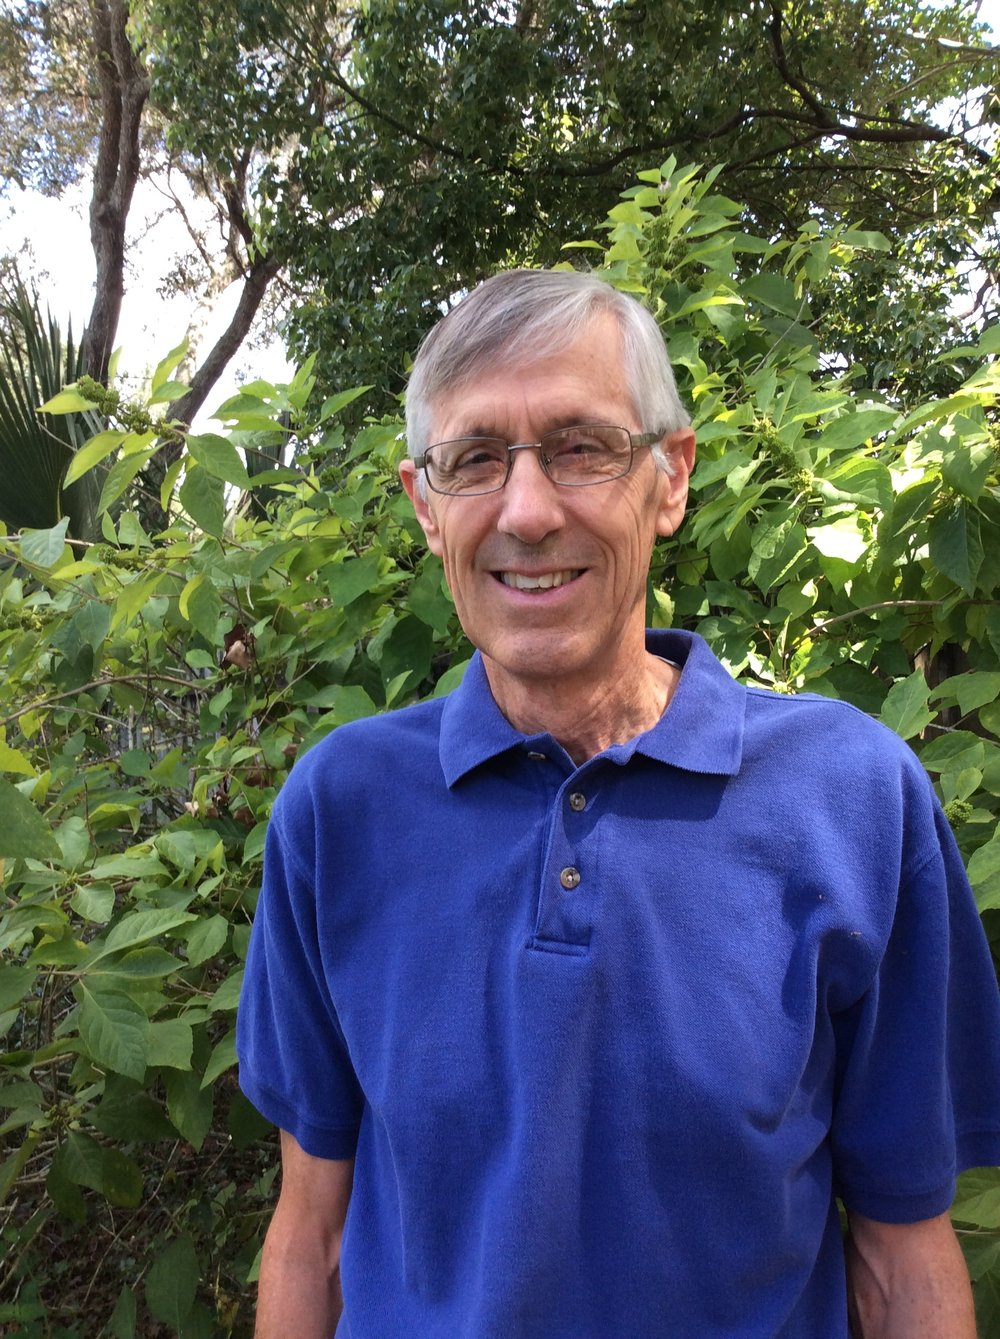 Jim Helmers, MD   Board Member Since 2014   Occupation  Forest Land Manager with Rocky Creek Timber, LLC and Retired Emergency Physician   Affiliations  The Longleaf Alliance, Florida Forestry Association, Florida Native Plant Society, Master Tree Farmer, Certified Prescribed Burn Manager   Areas of Expertise  Forest Land and Restoration Management, Medicine and Chemistry   Committee(s)  Restoration, Maintenance, Grants, & Fundraising, Nominating